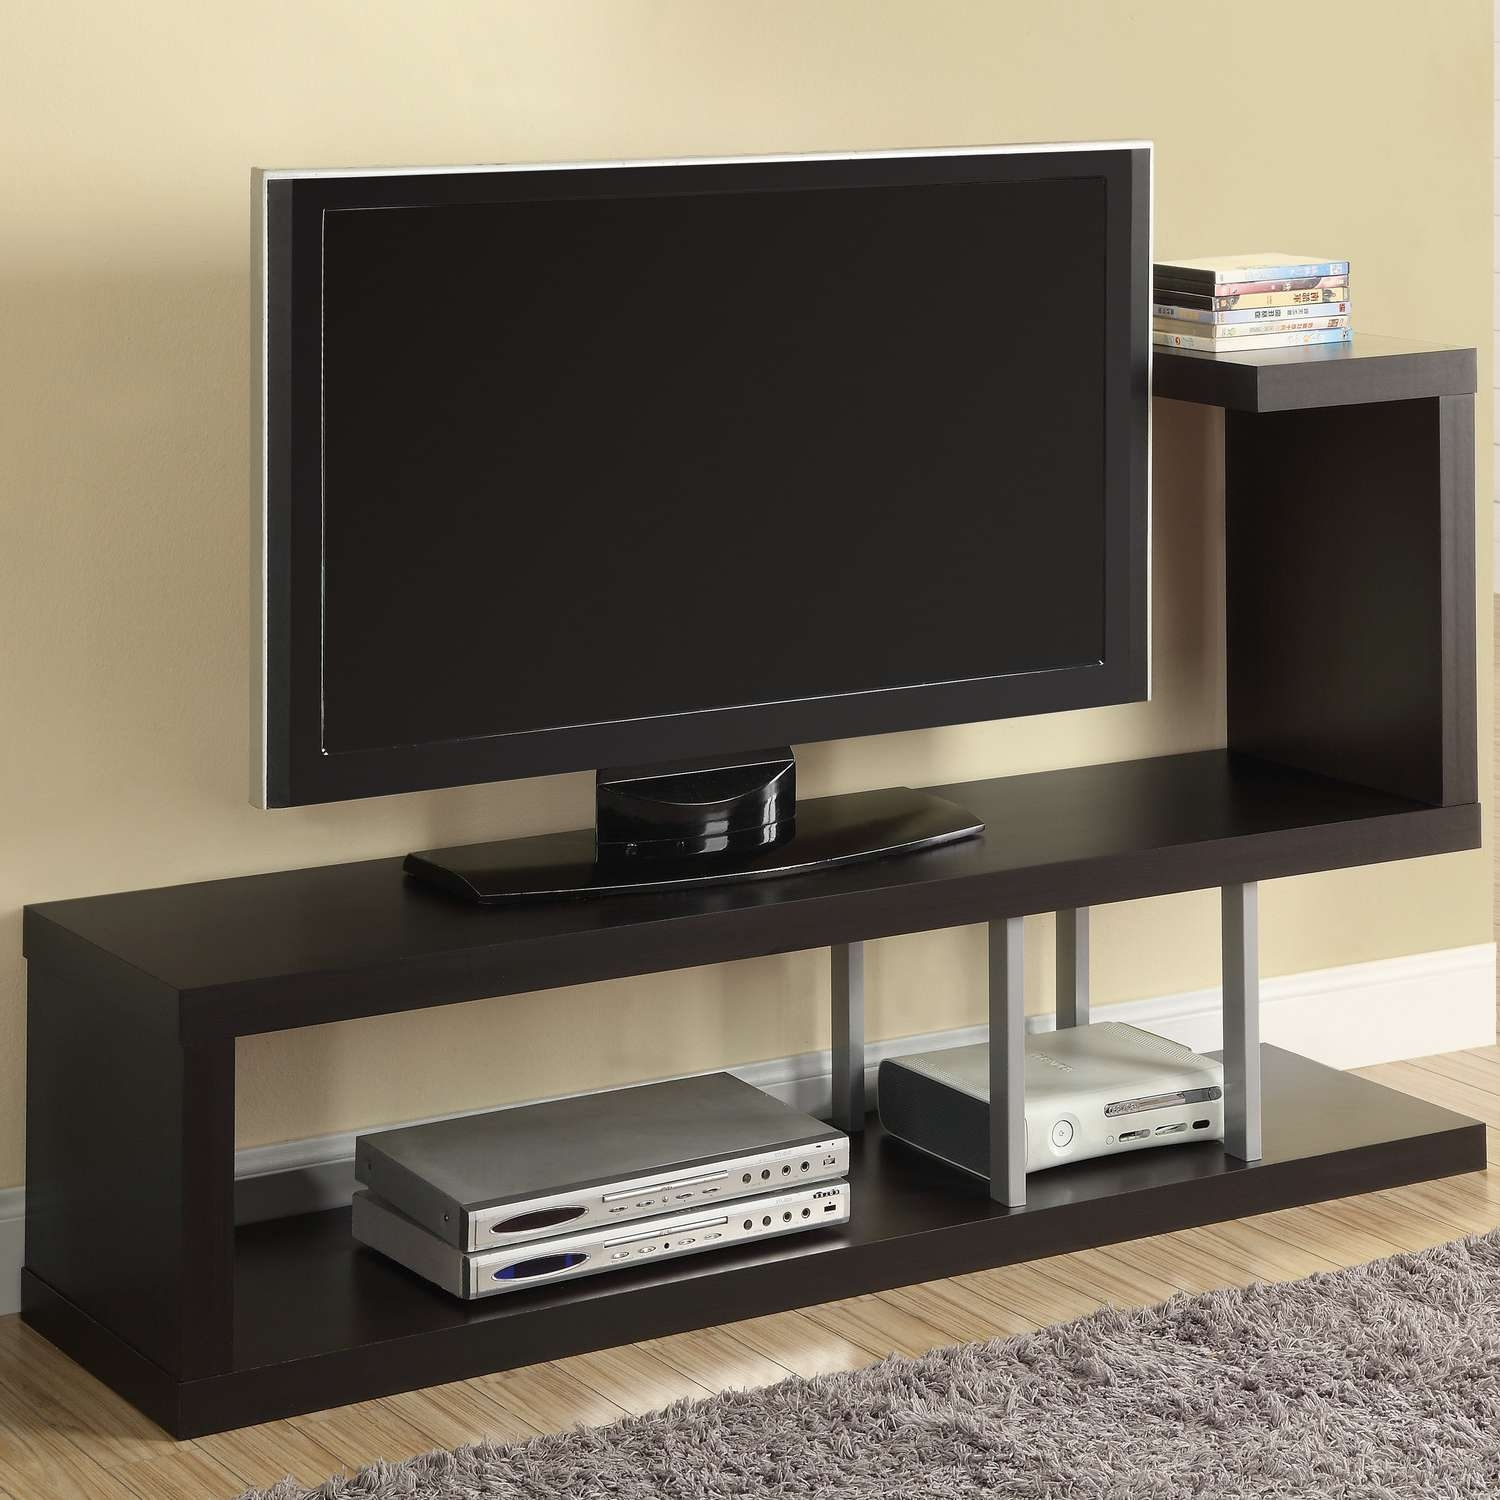 Design Tv Stand Modern Designs For Ultimate Home Inspirations With Tv Stands For Small Rooms (View 6 of 15)